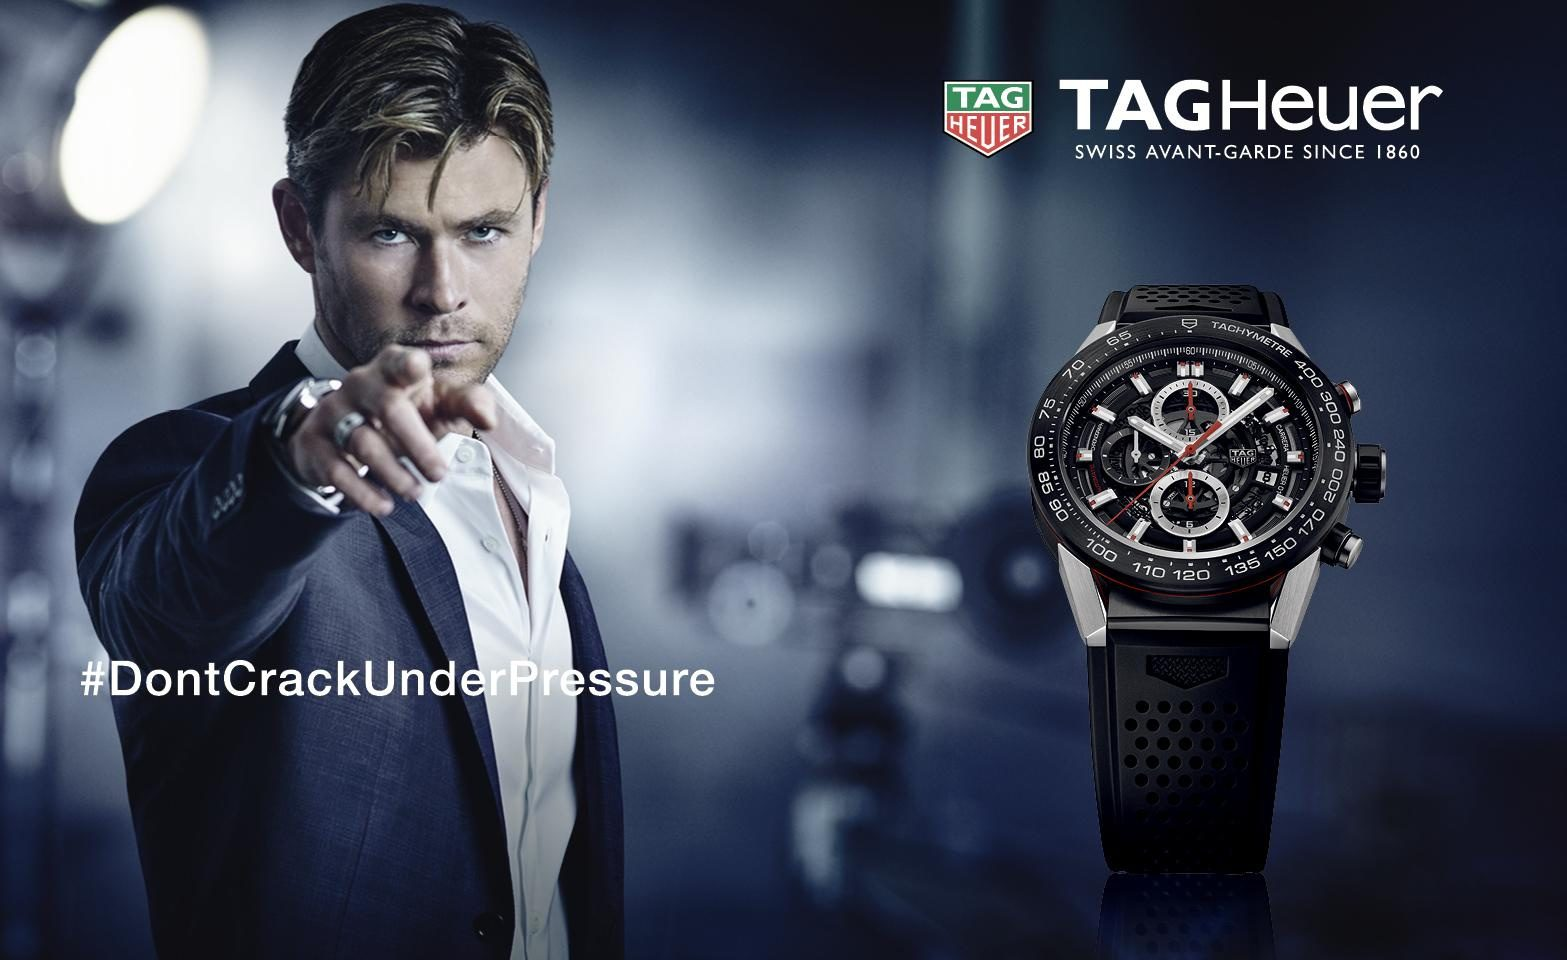 「tag heuer don't crack under pressure」の画像検索結果